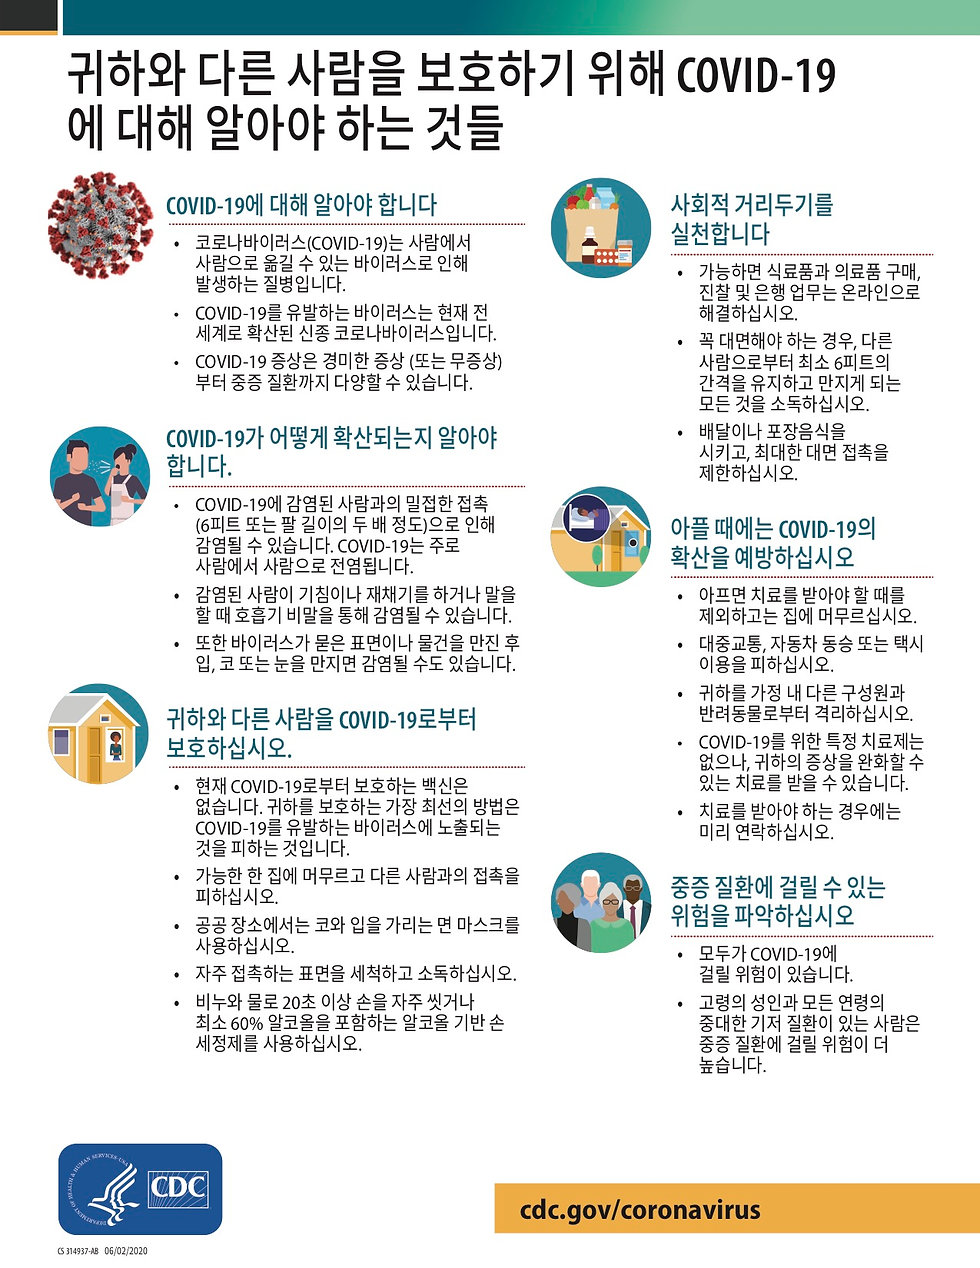 2019-ncov-factsheet-Korean.jpg